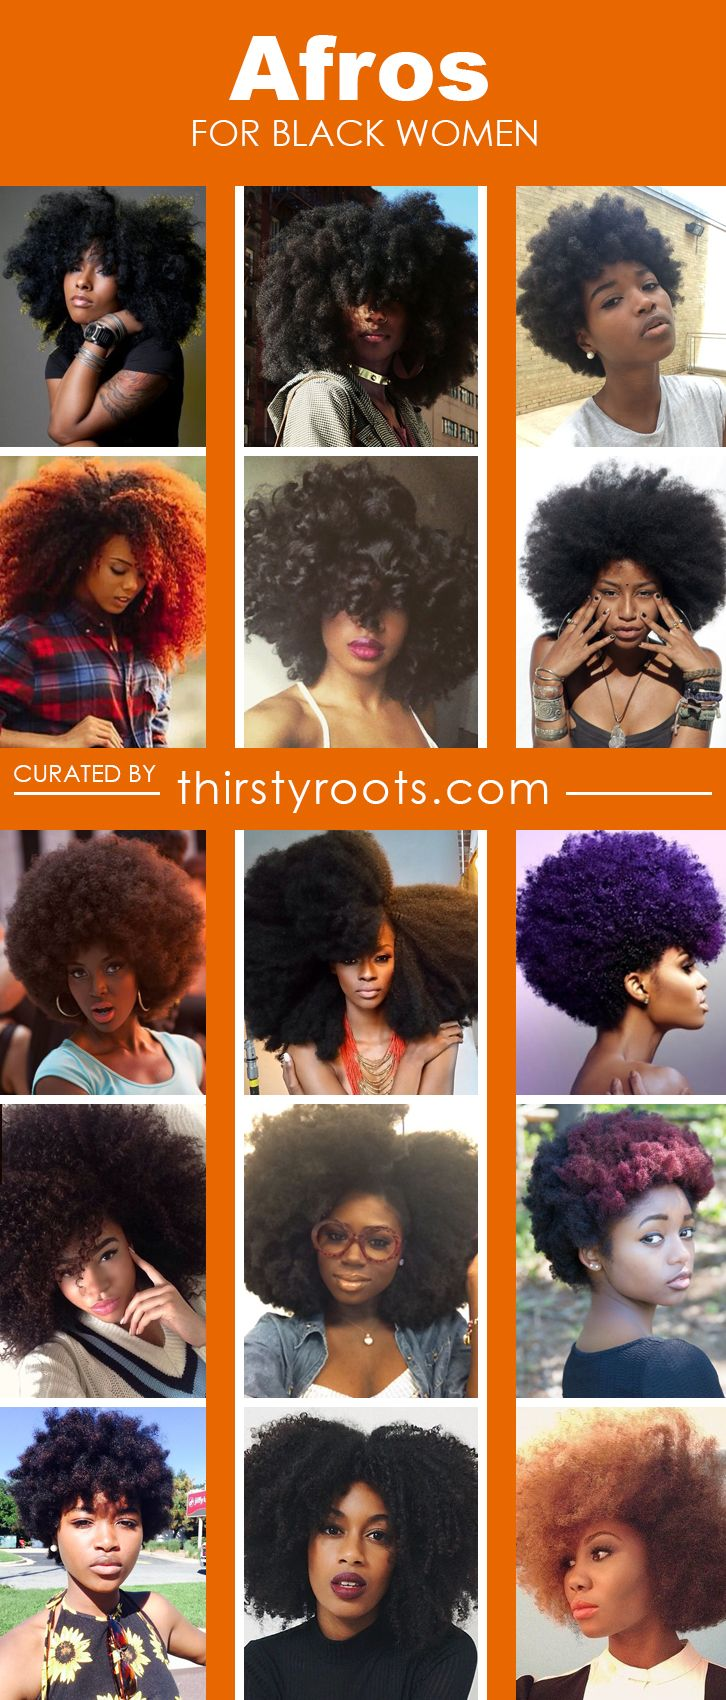 Super hot natural afro hairstyles for black women to rock in the streets and at the workplace.